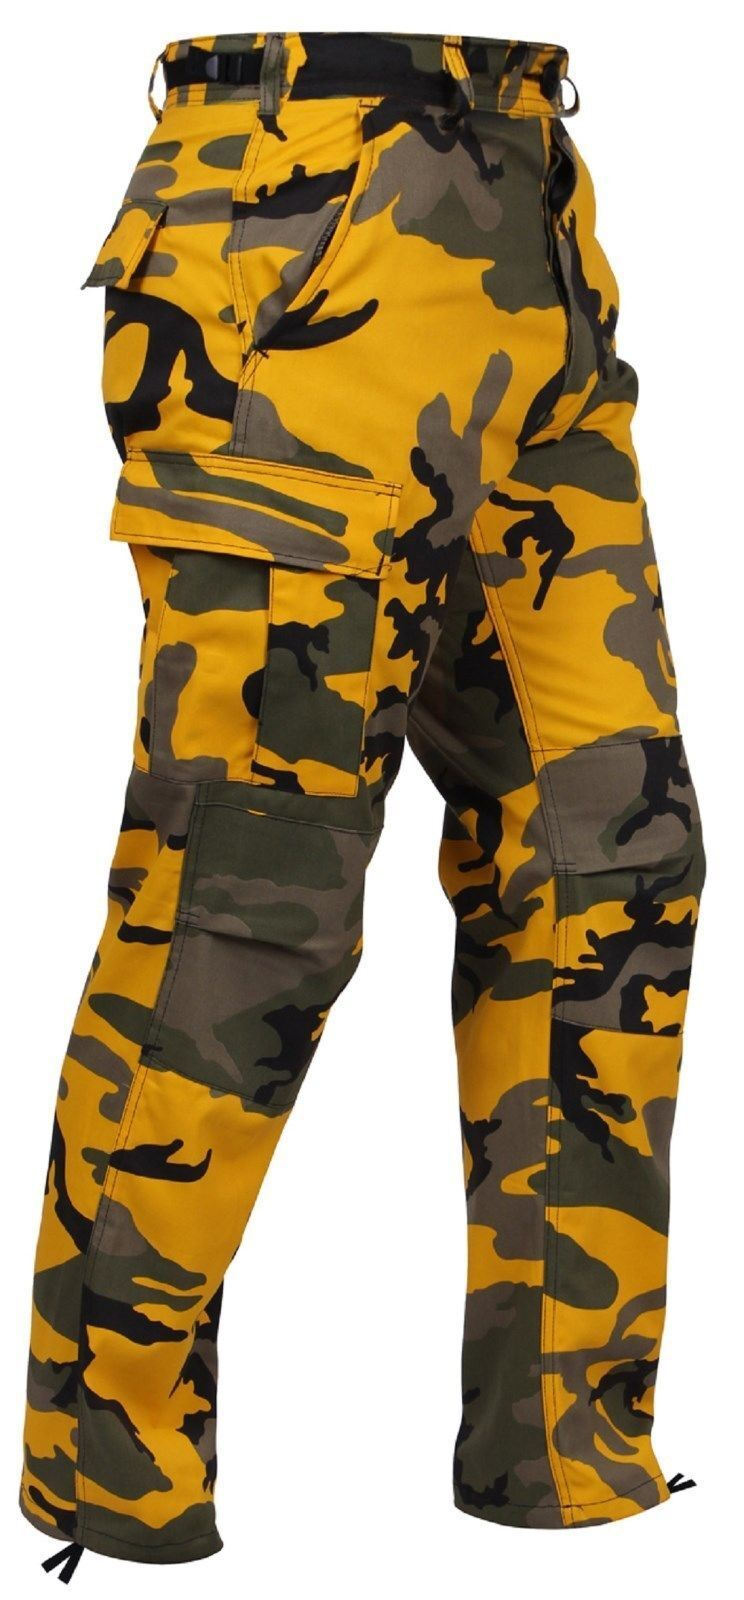 Stinger Yellow Camo Military Cargo Fatigue BDU Pants Polyester Cot  redhco 8875